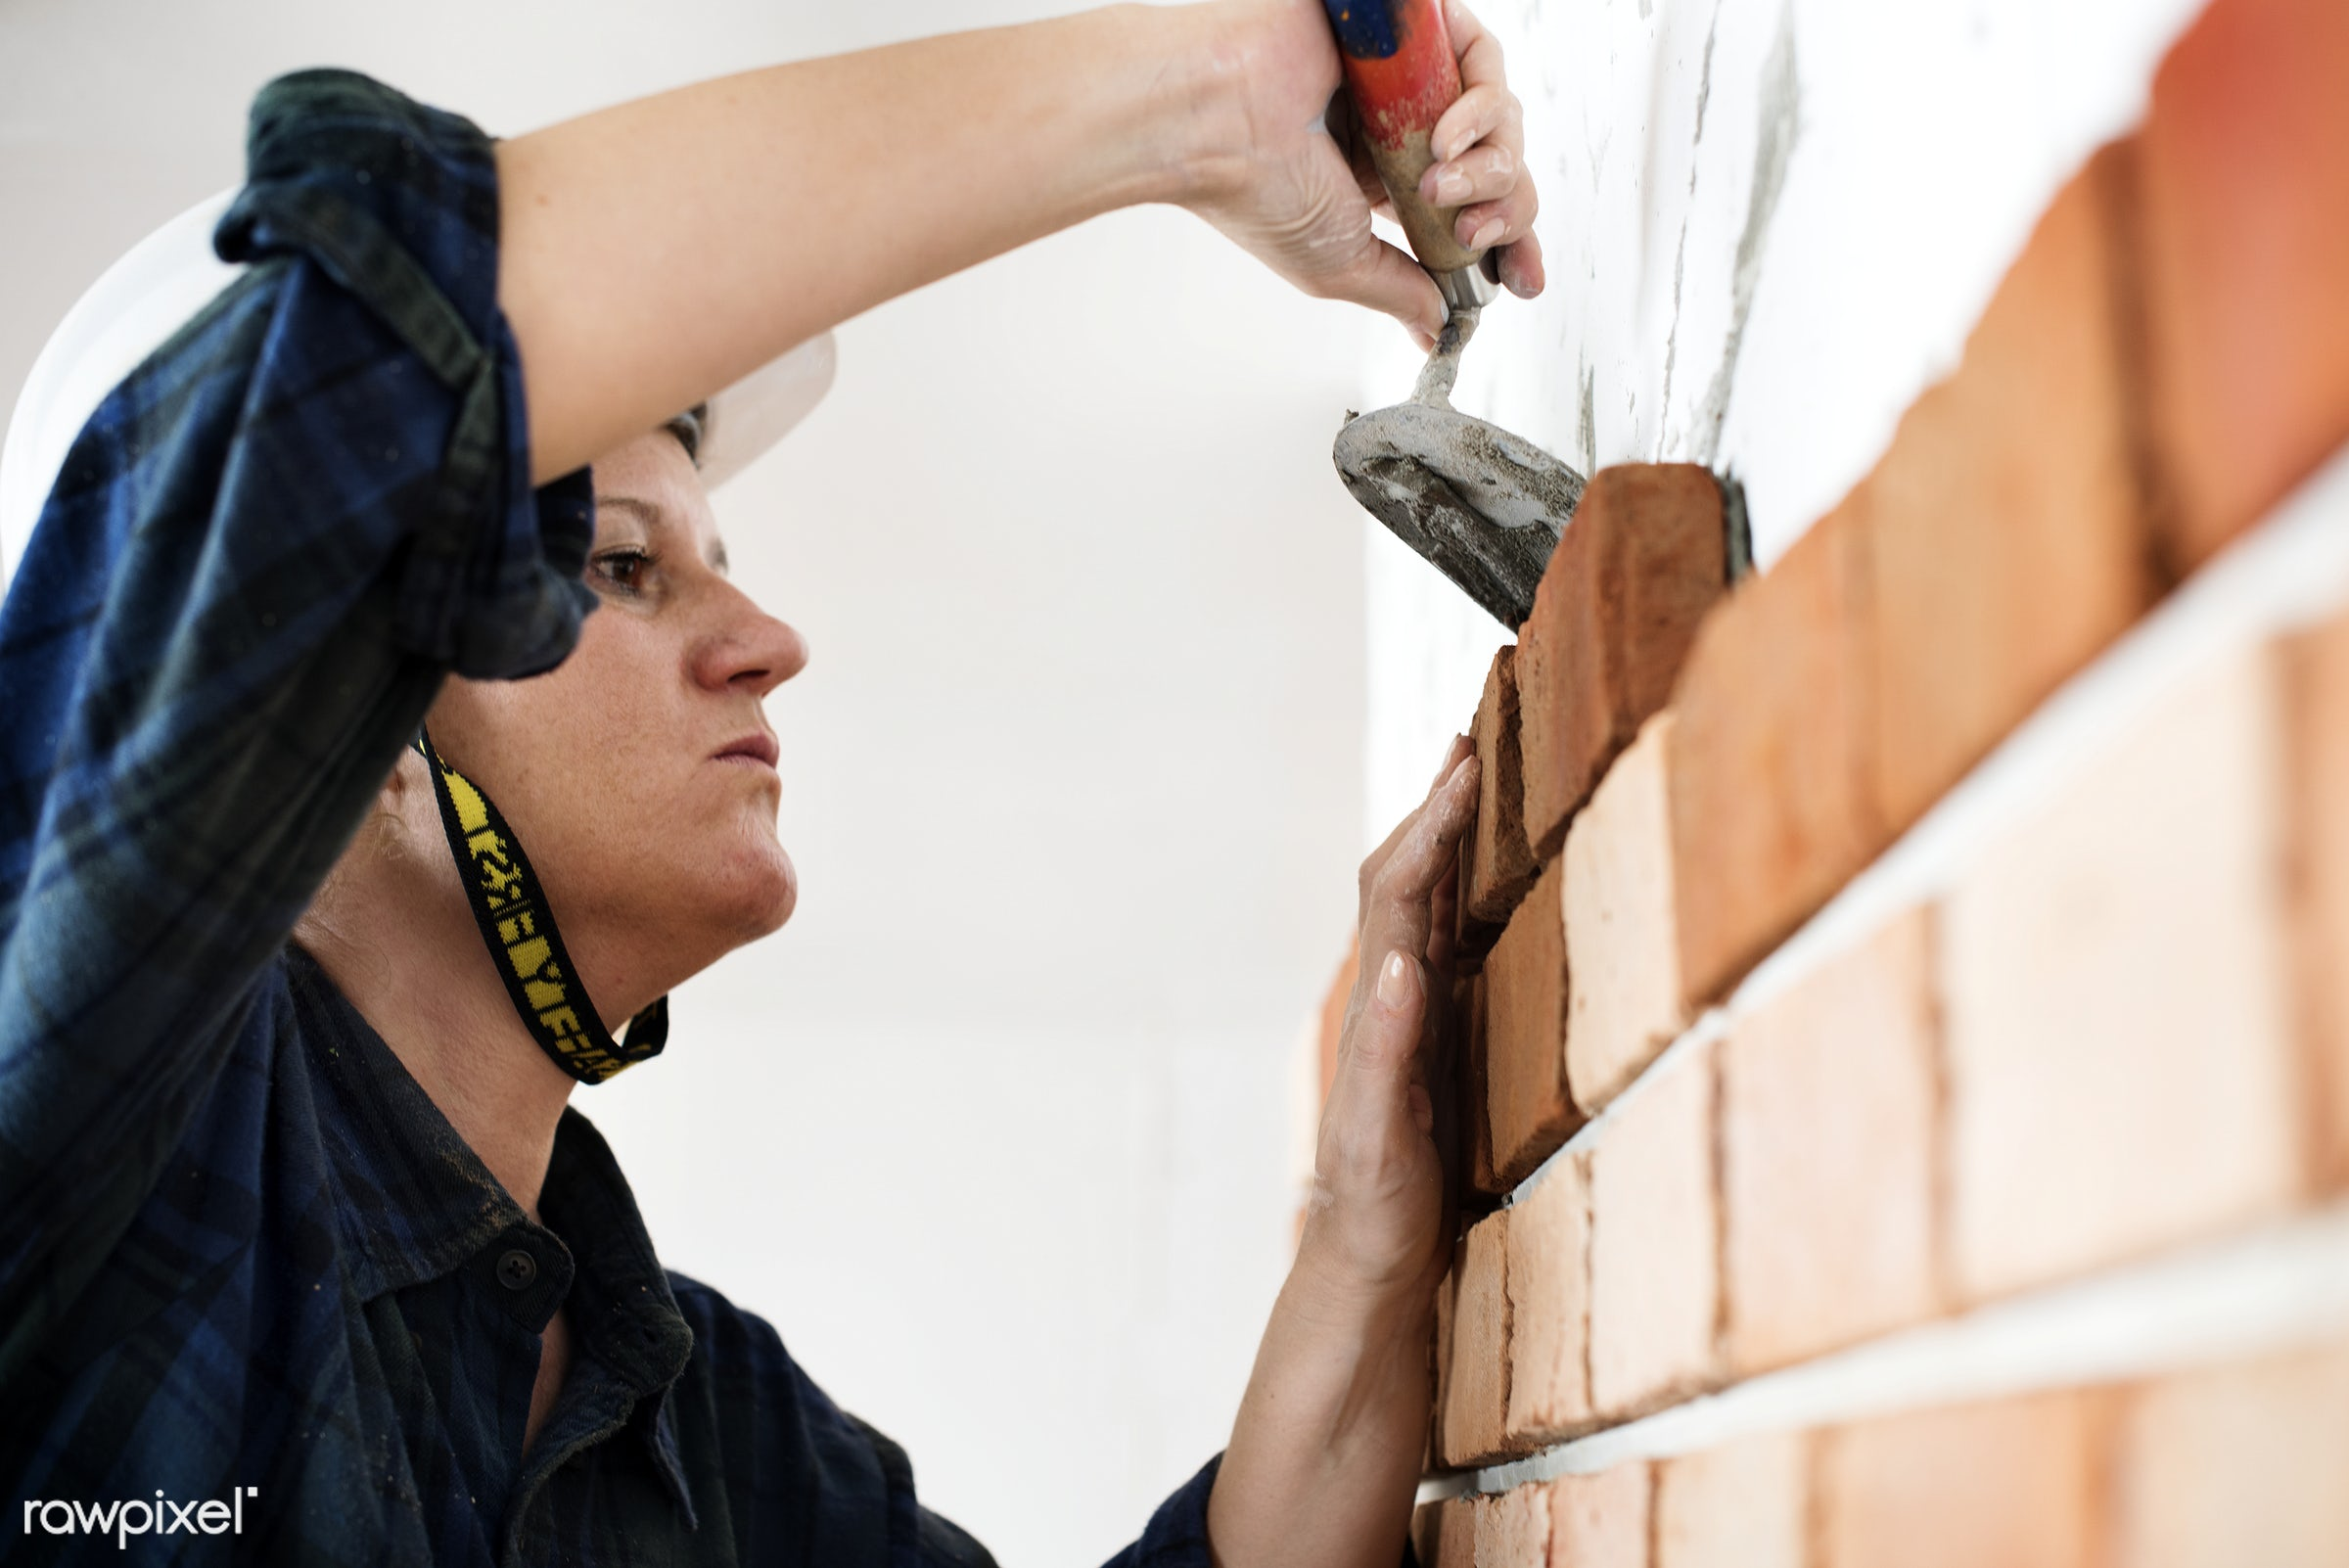 construction, woman, work, repair, professional, brick, helmet, concrete, worker, structure, french, american, british,...